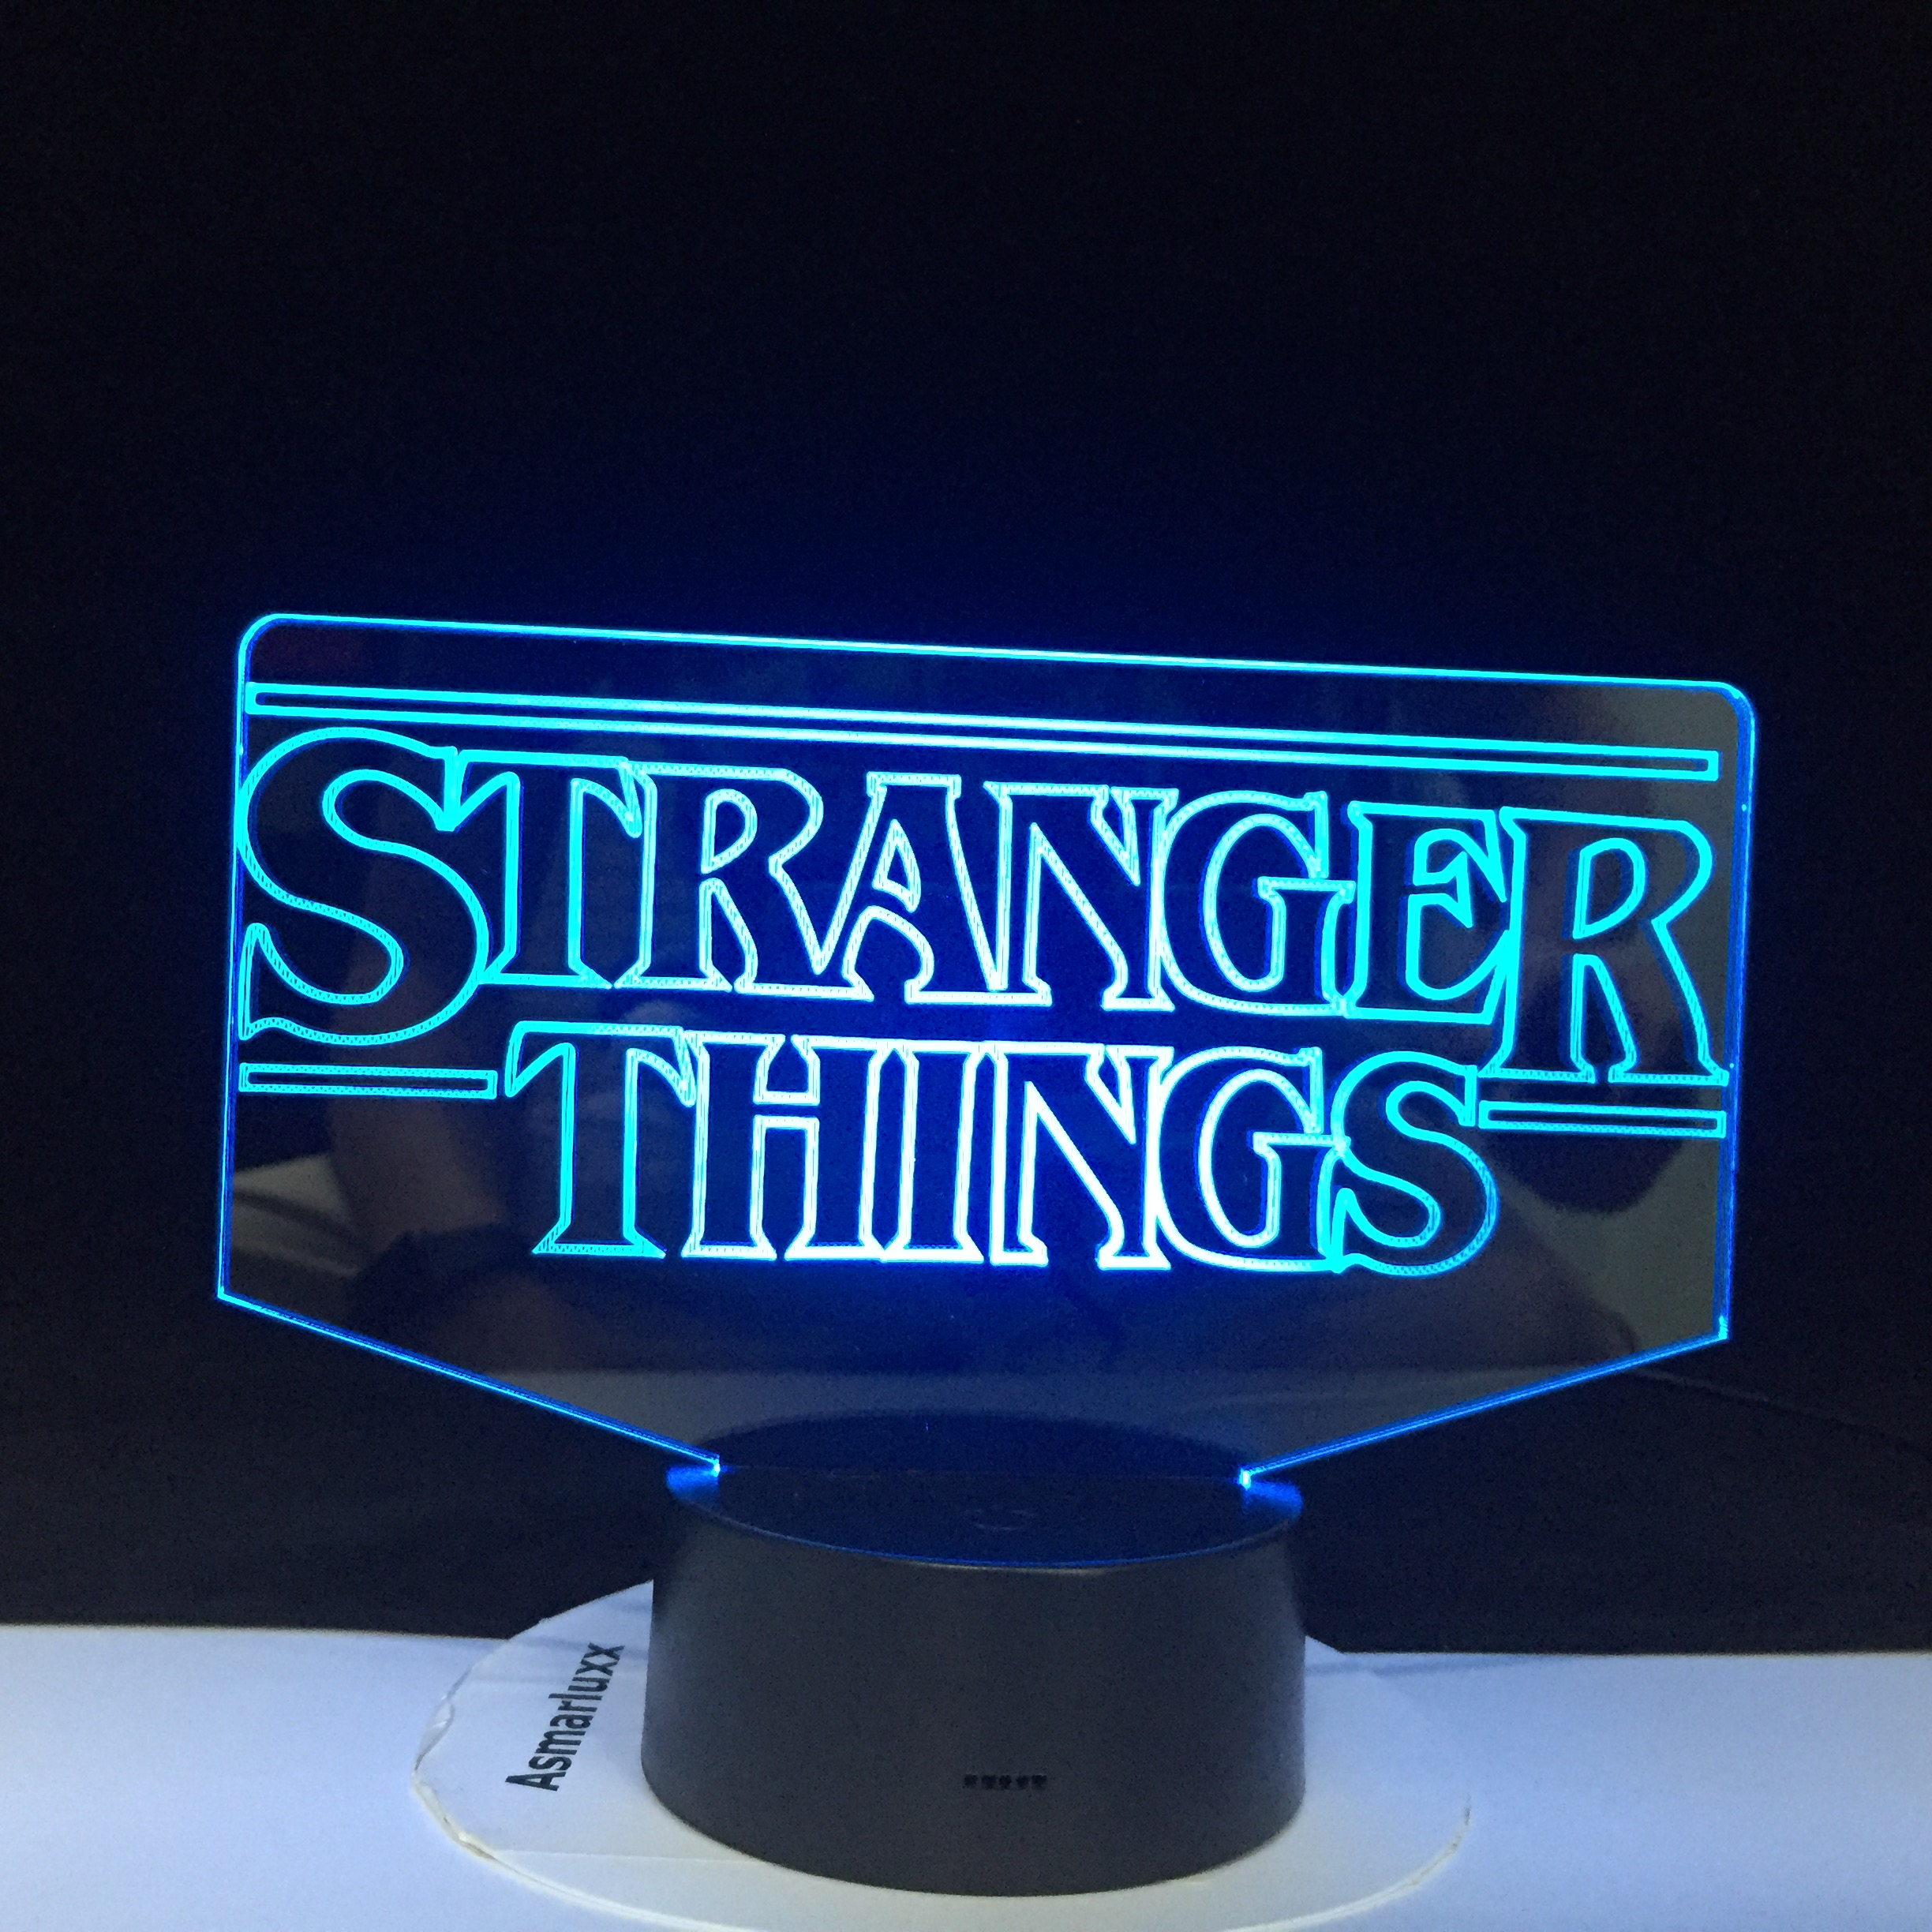 The TV Show Stranger Things Best Present For Adult For Indoor Decoration Battery Powered Dropship 3D Lamp  Led Night Light Lamp